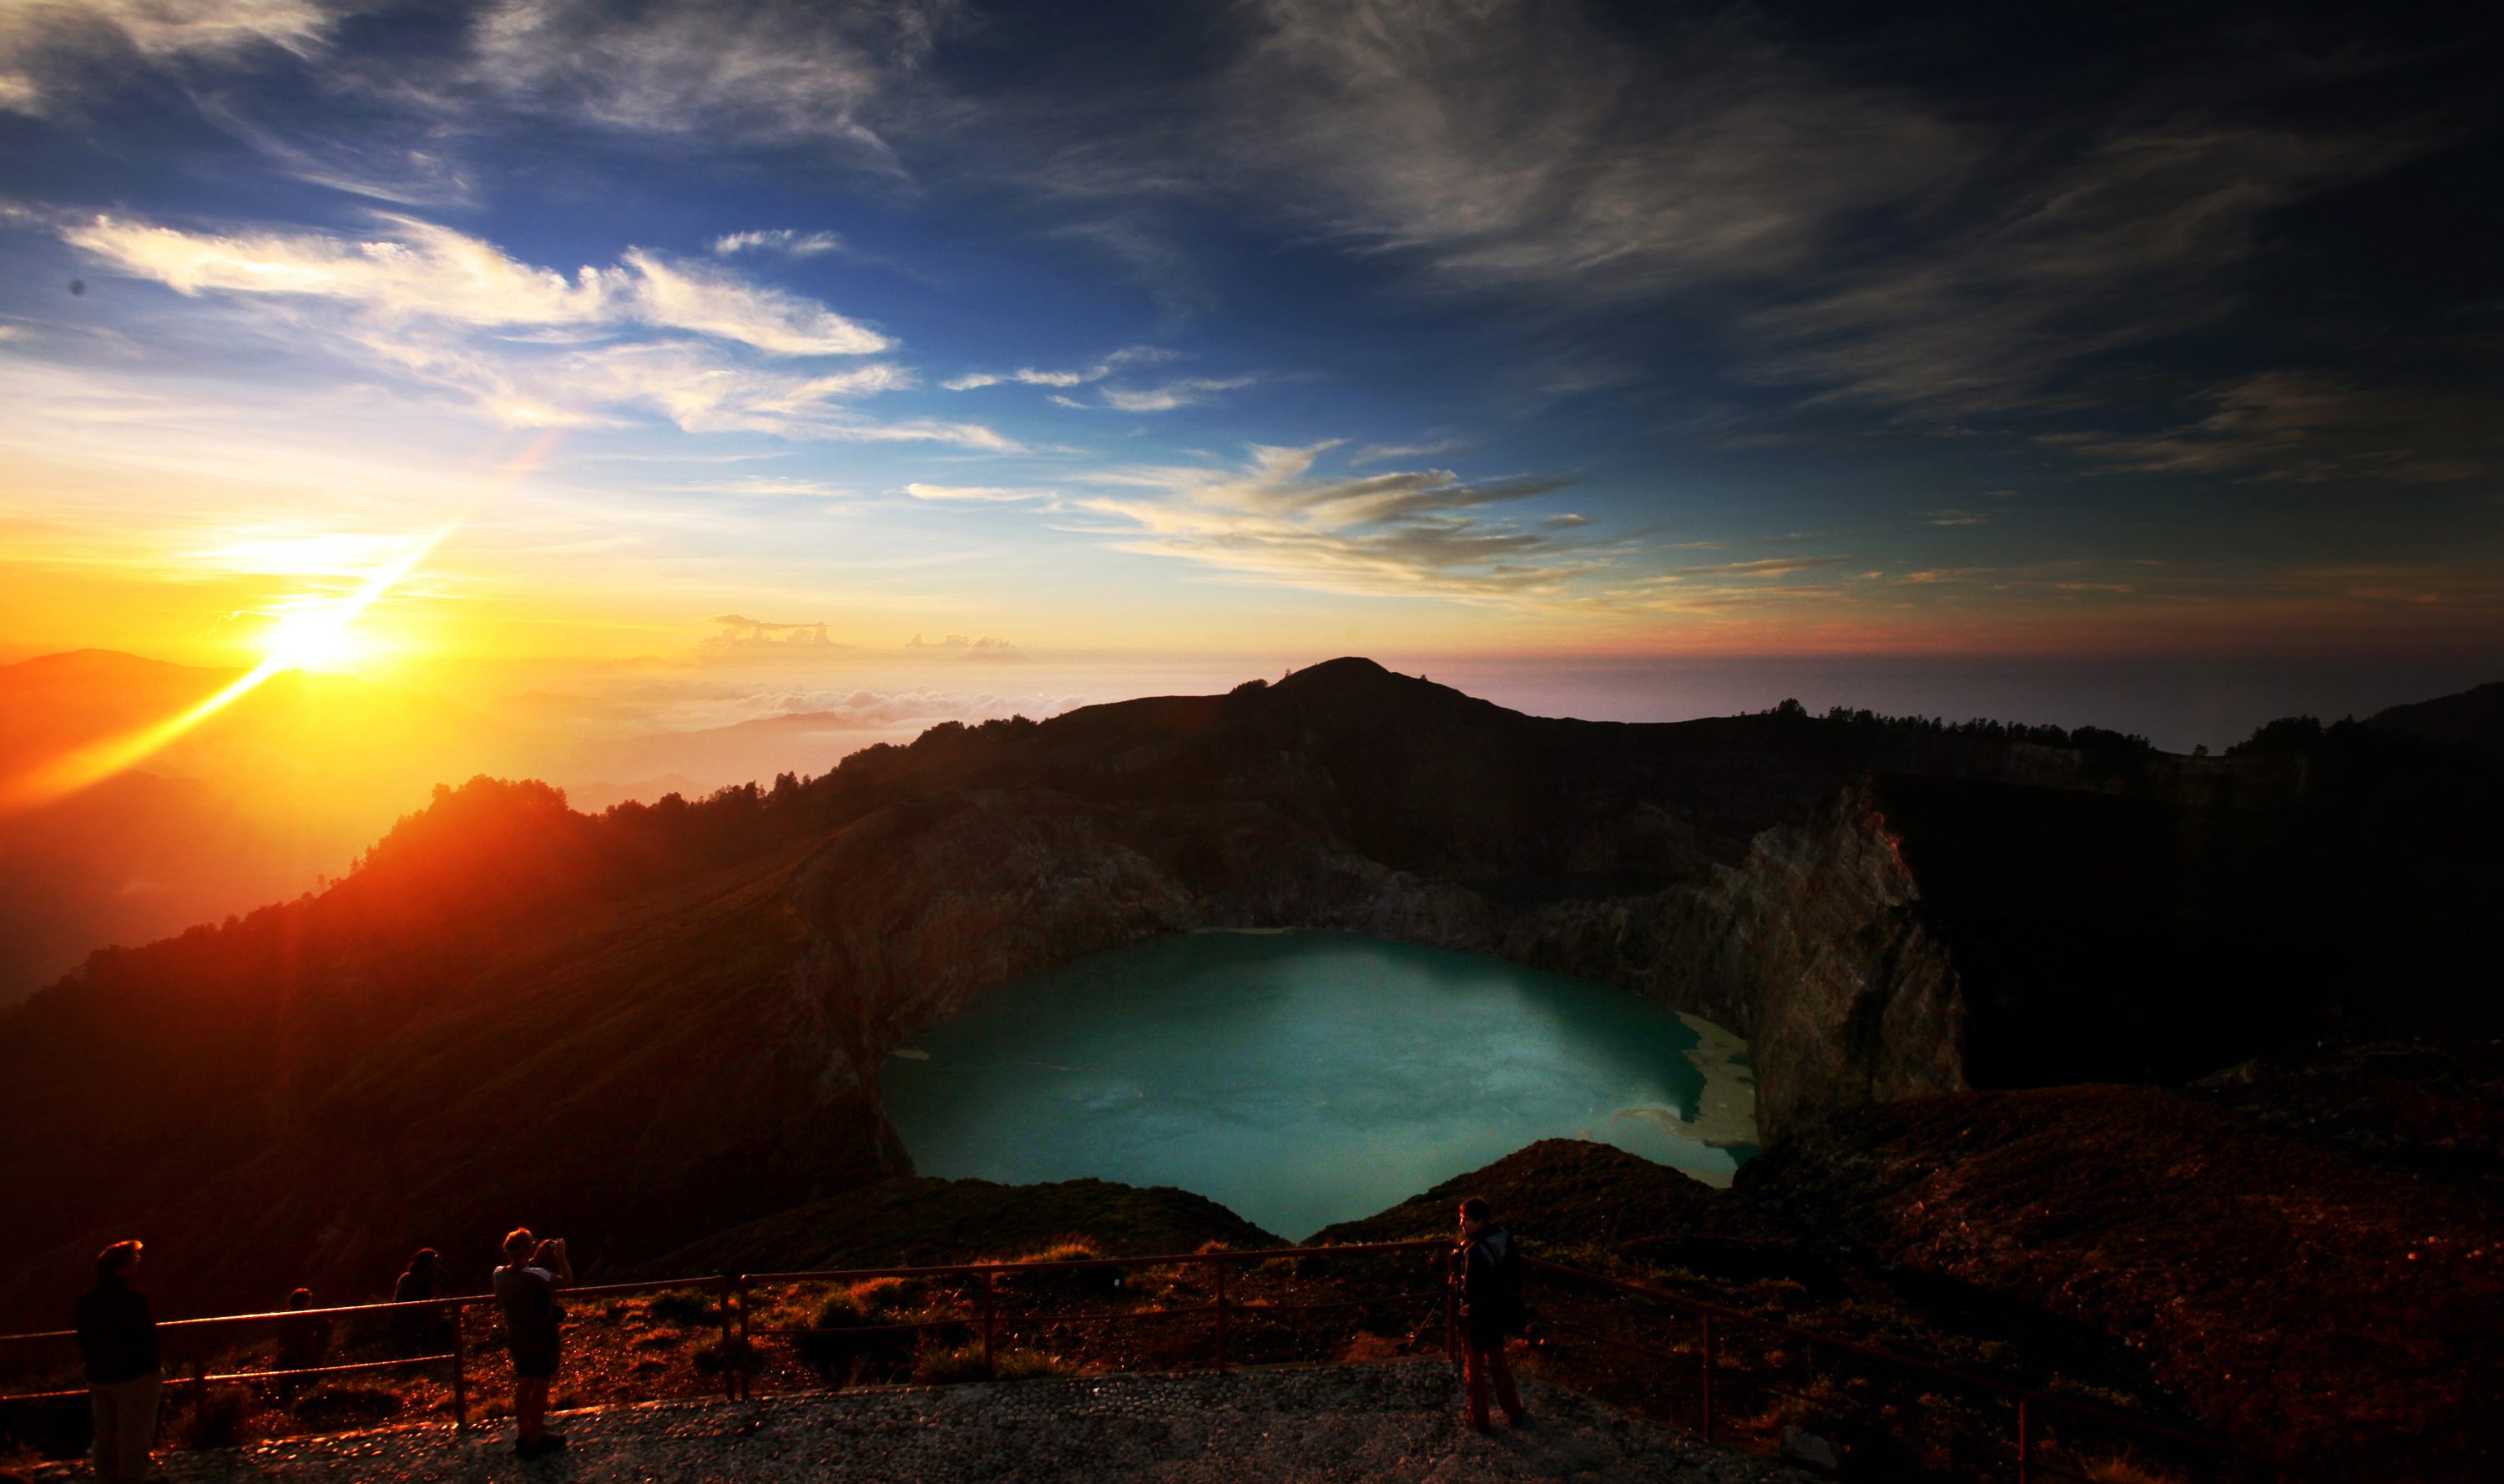 Sunrise, Mount Kelimutu